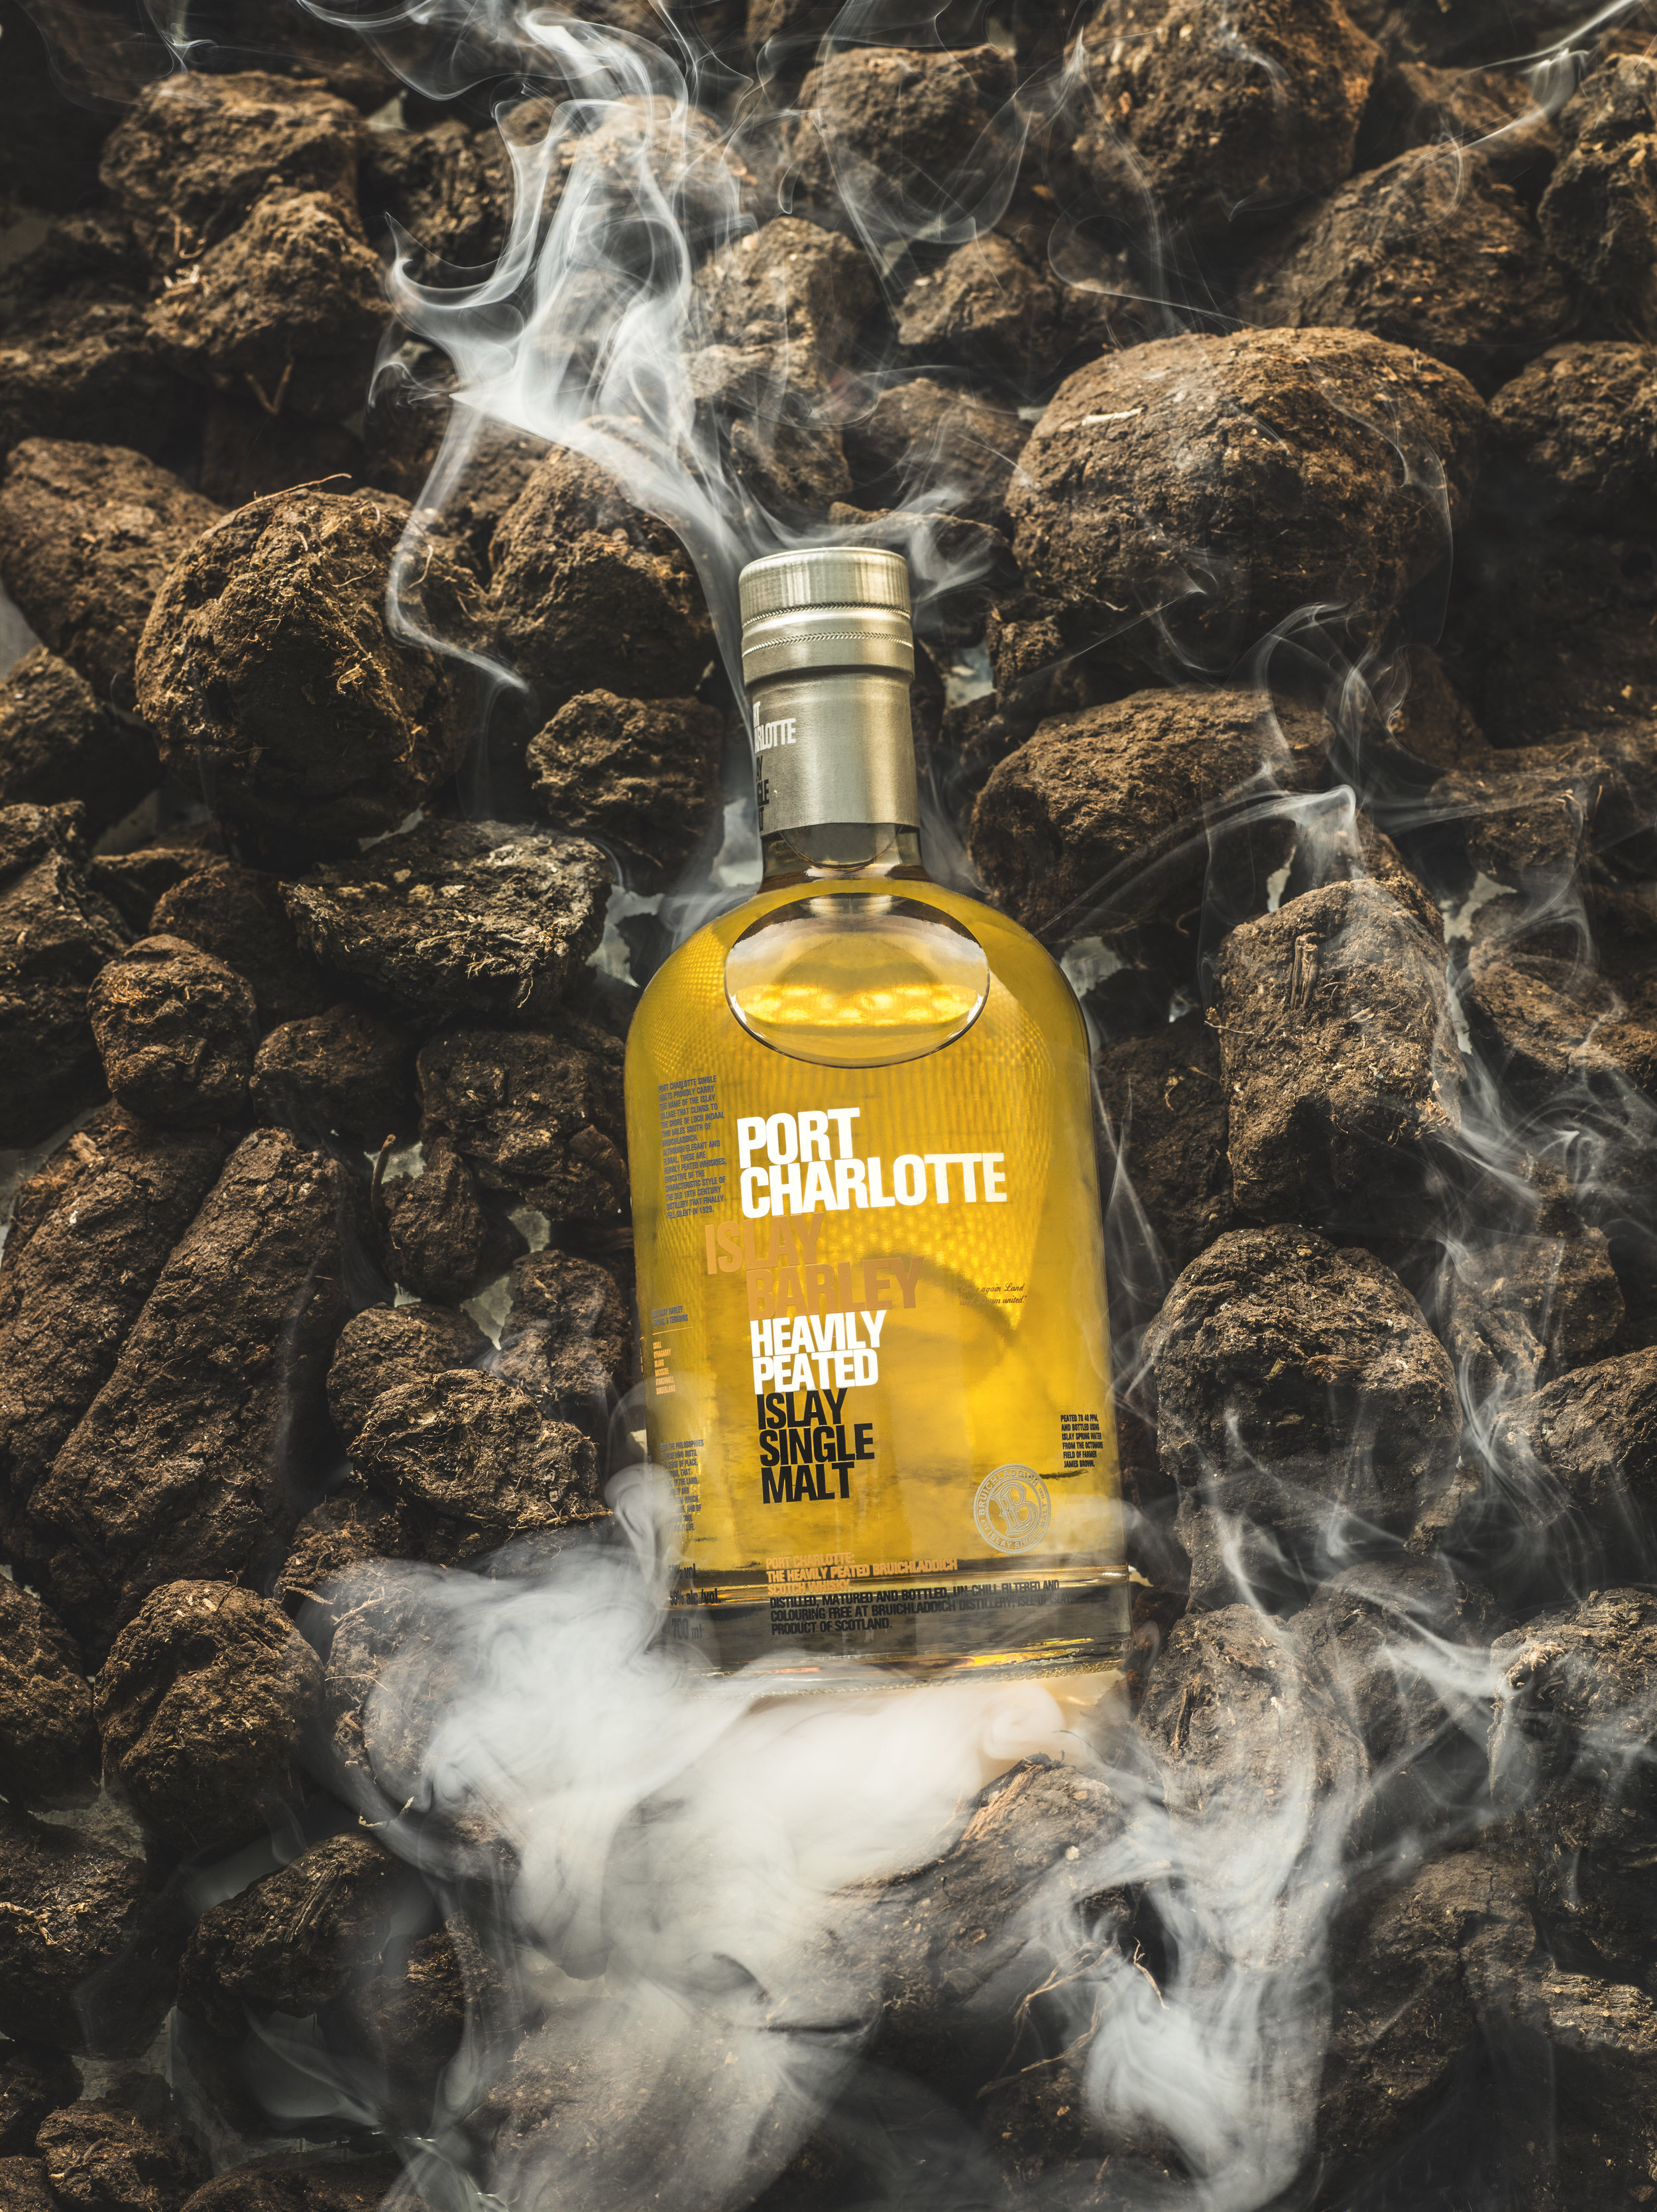 bruichladdich whisky on peat, still life drink shoot. advertising, packshot, striking clean modern imagery. lifestyle campaign images with atmosphere. Whisky, peat